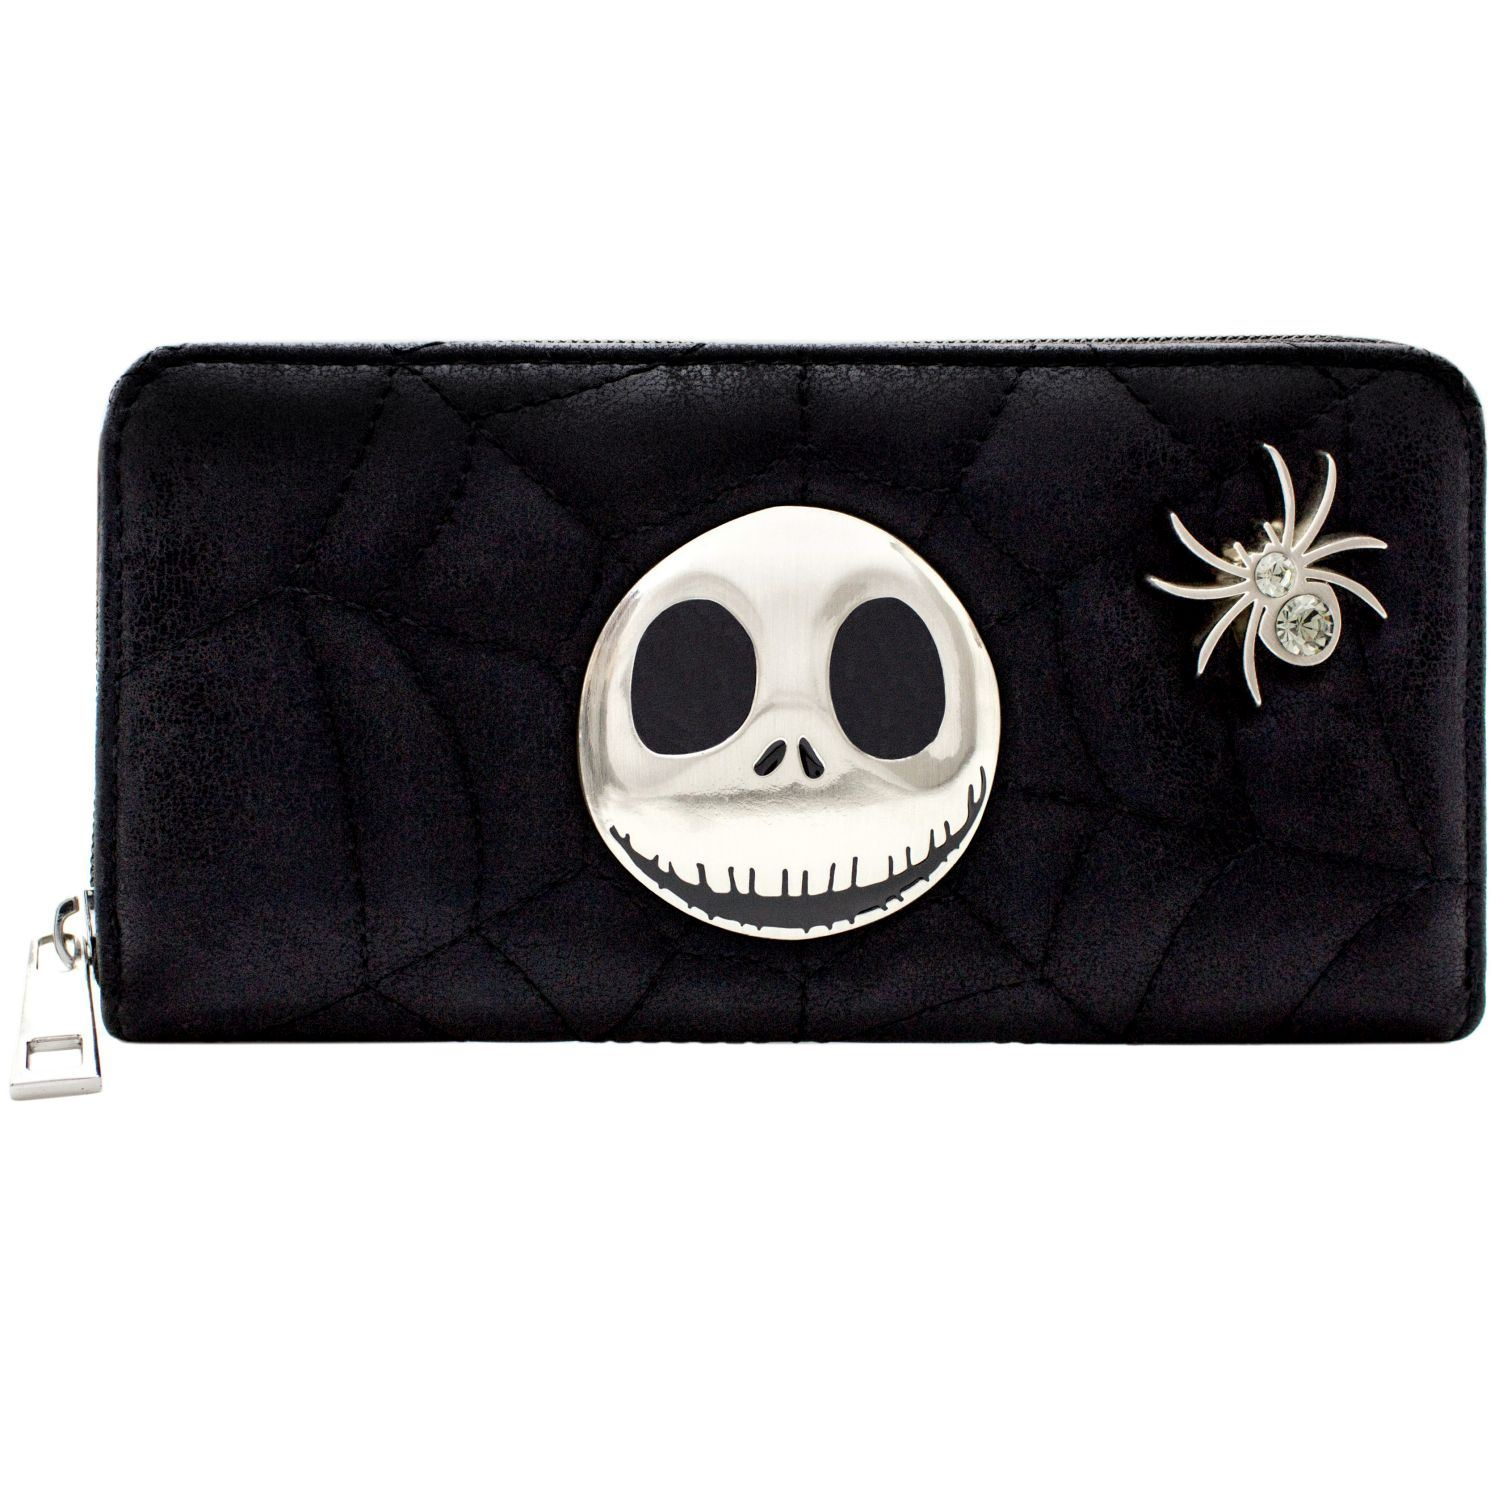 Details about Official Nightmare Before Christmas Quilted Web Coin   Card  Clutch Purse  SECOND 3b465ef096e